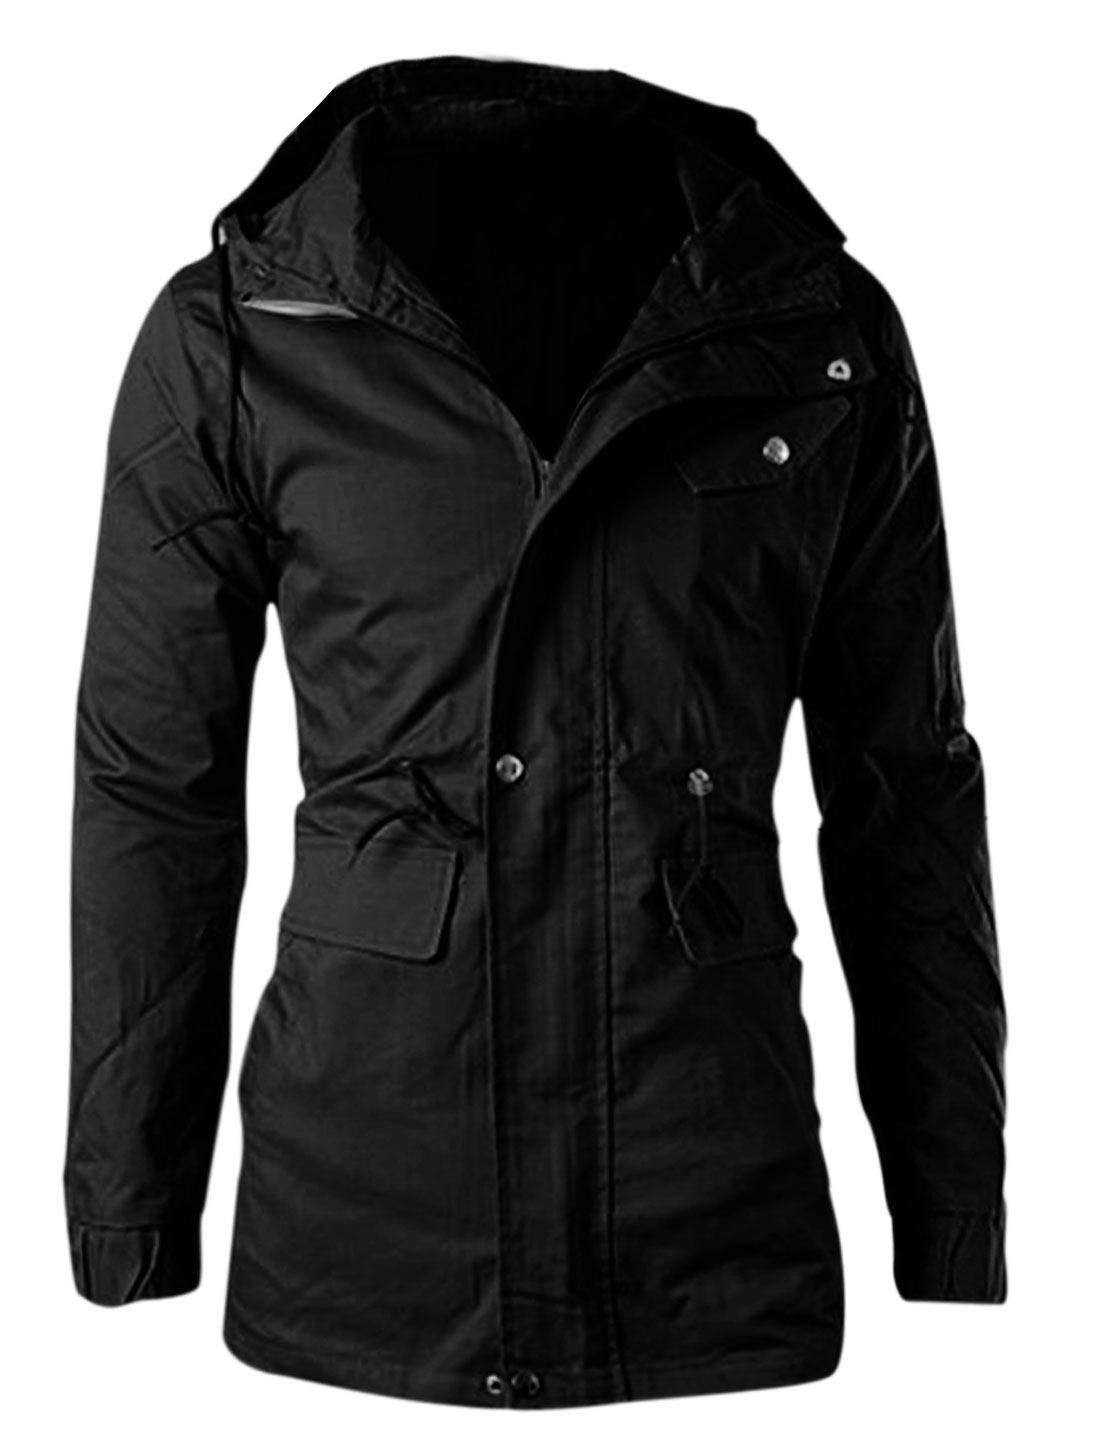 Men Zipper-Up Front Pockets Drawcord Waist Lining Fashion Jacket Black M